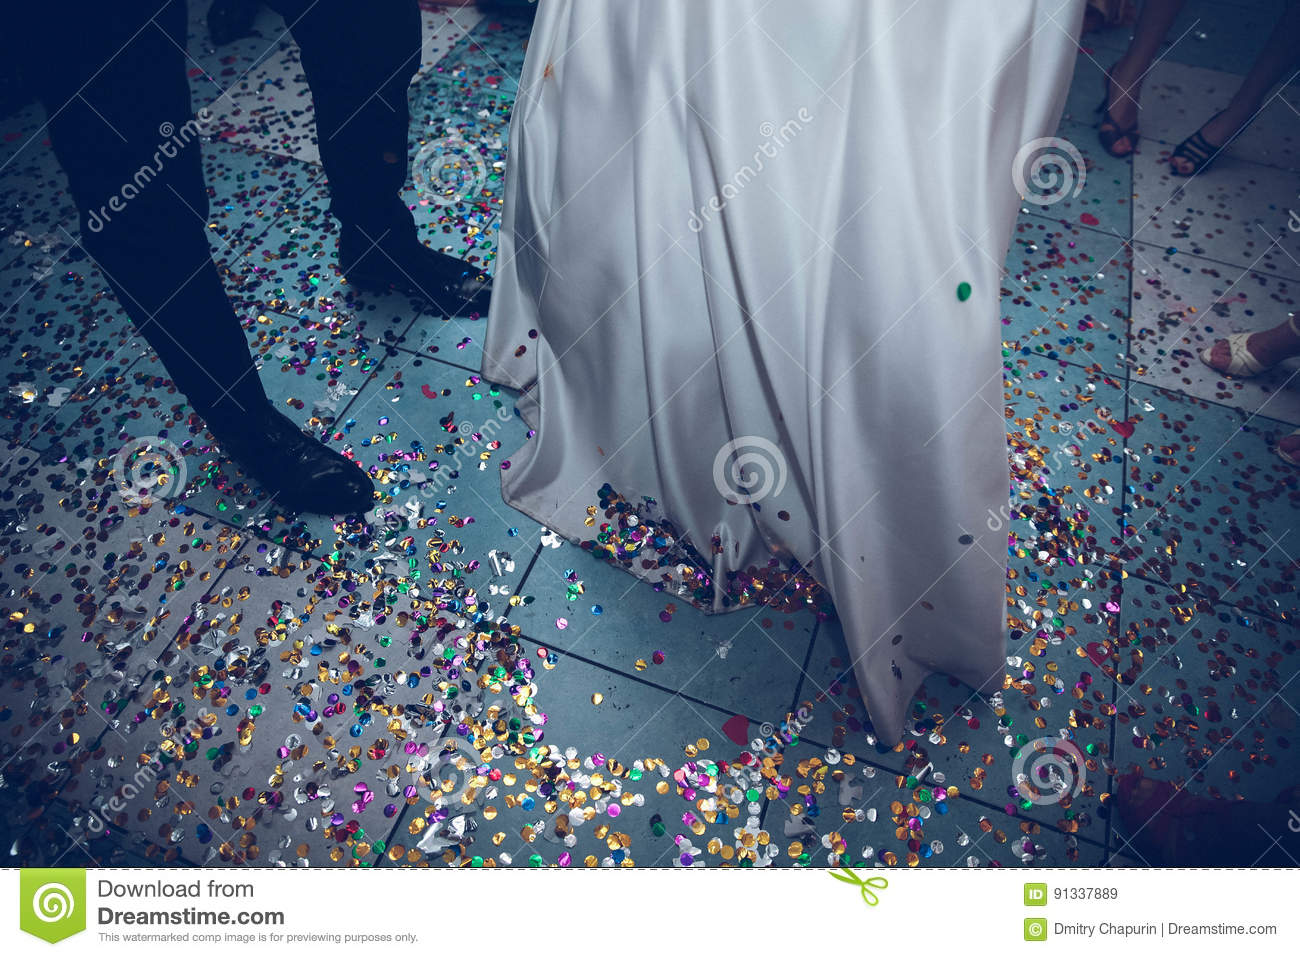 Feet of the bride and groom on a background of confetti